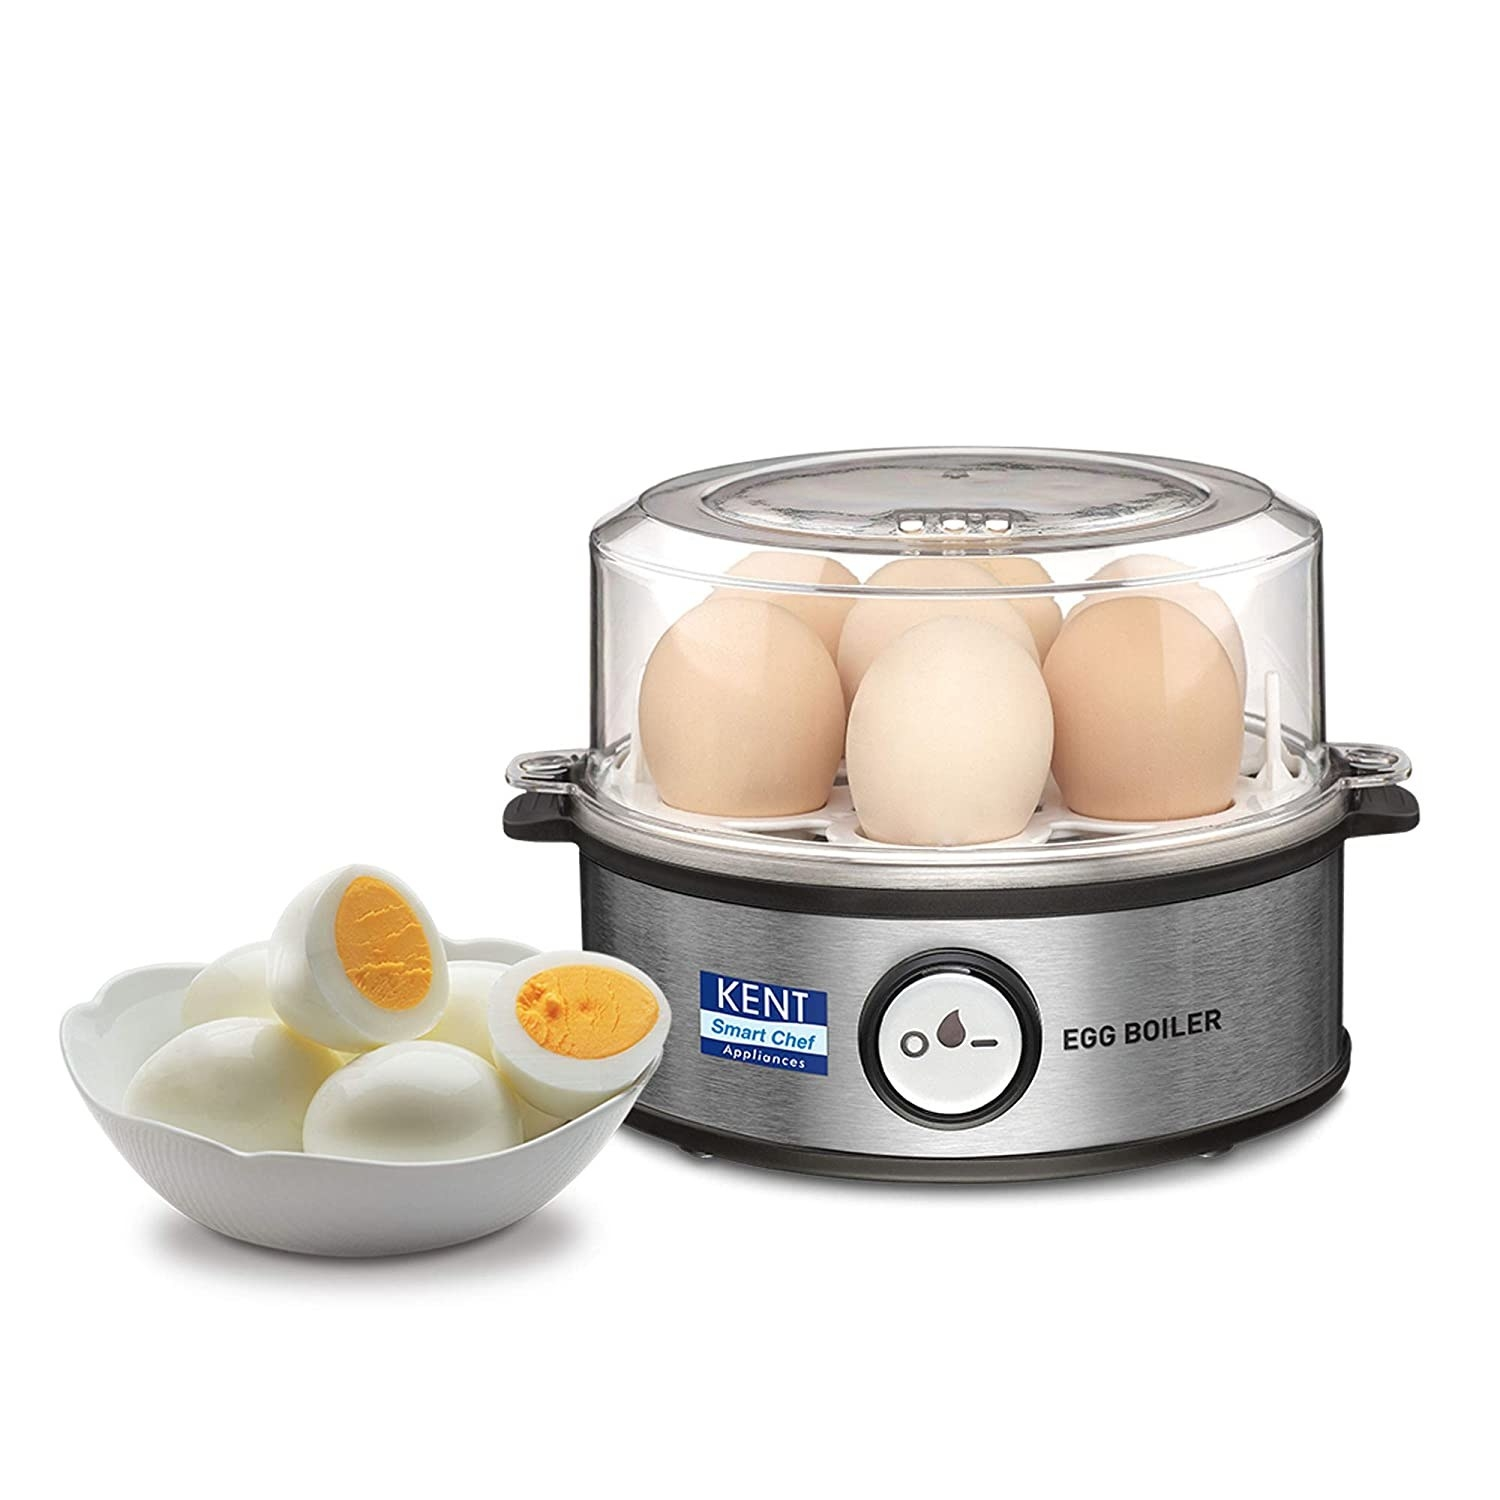 The egg boiler with eggs inside and a bowl of eggs sitting next to it.